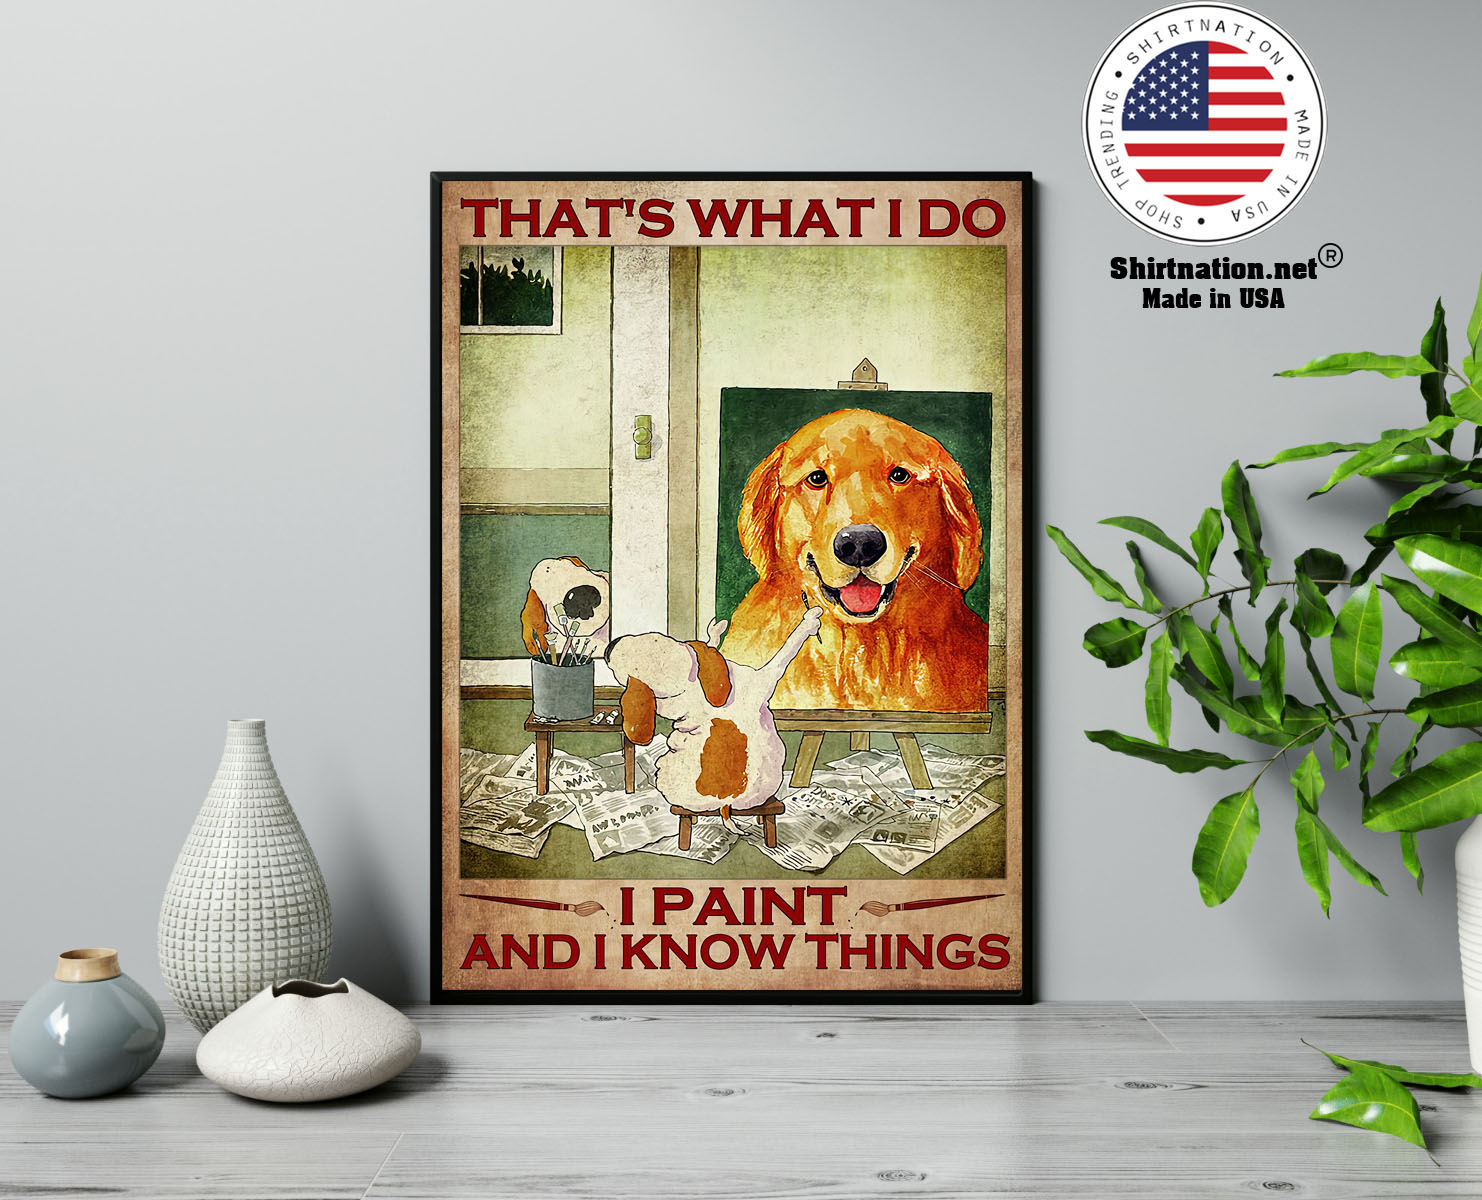 Dog Thats what I do I paint and I know things poster 13